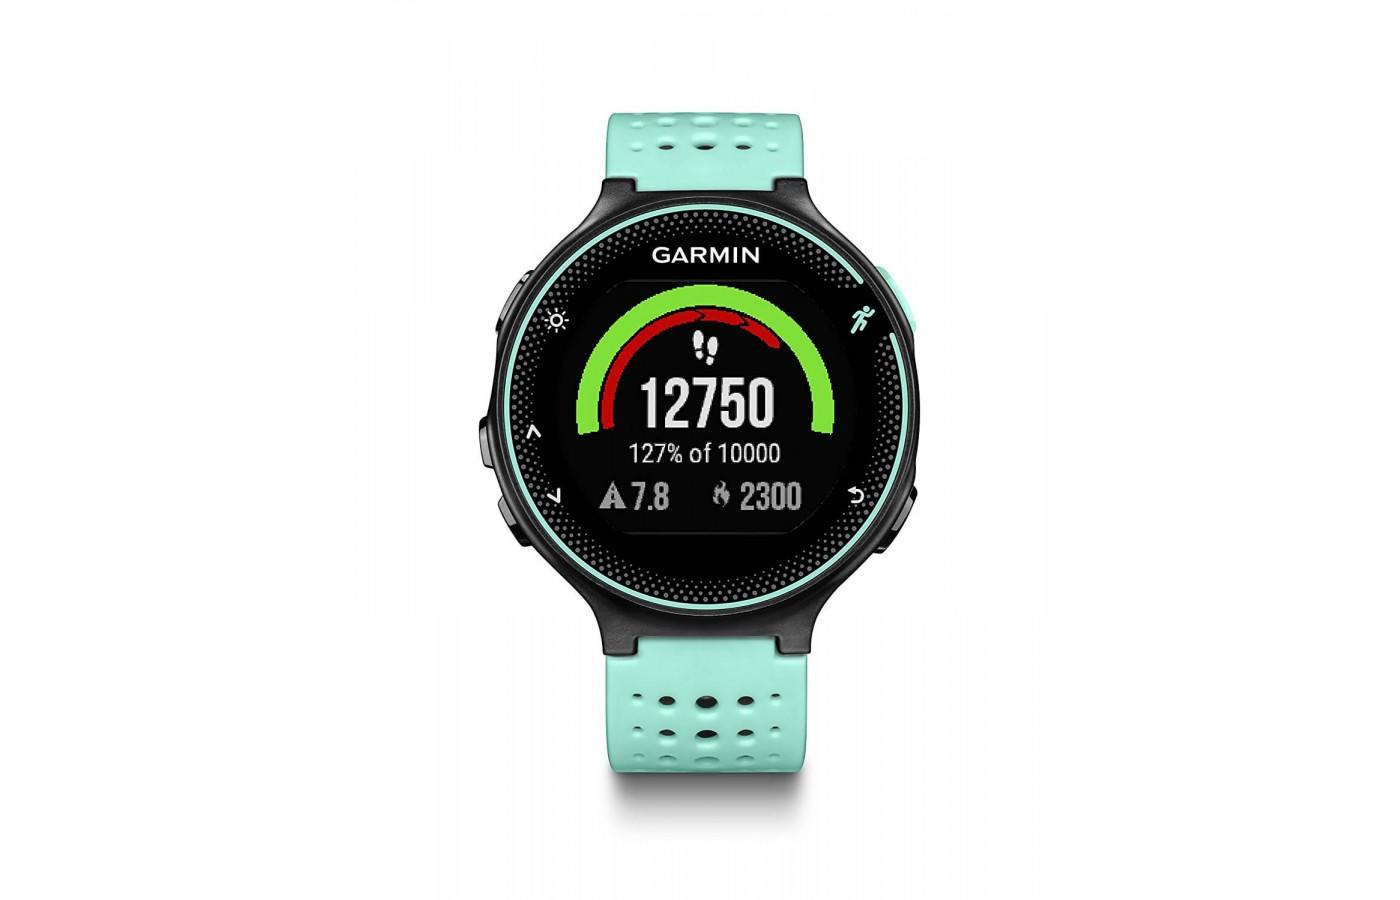 Garmin Forerunner 235 has many applications